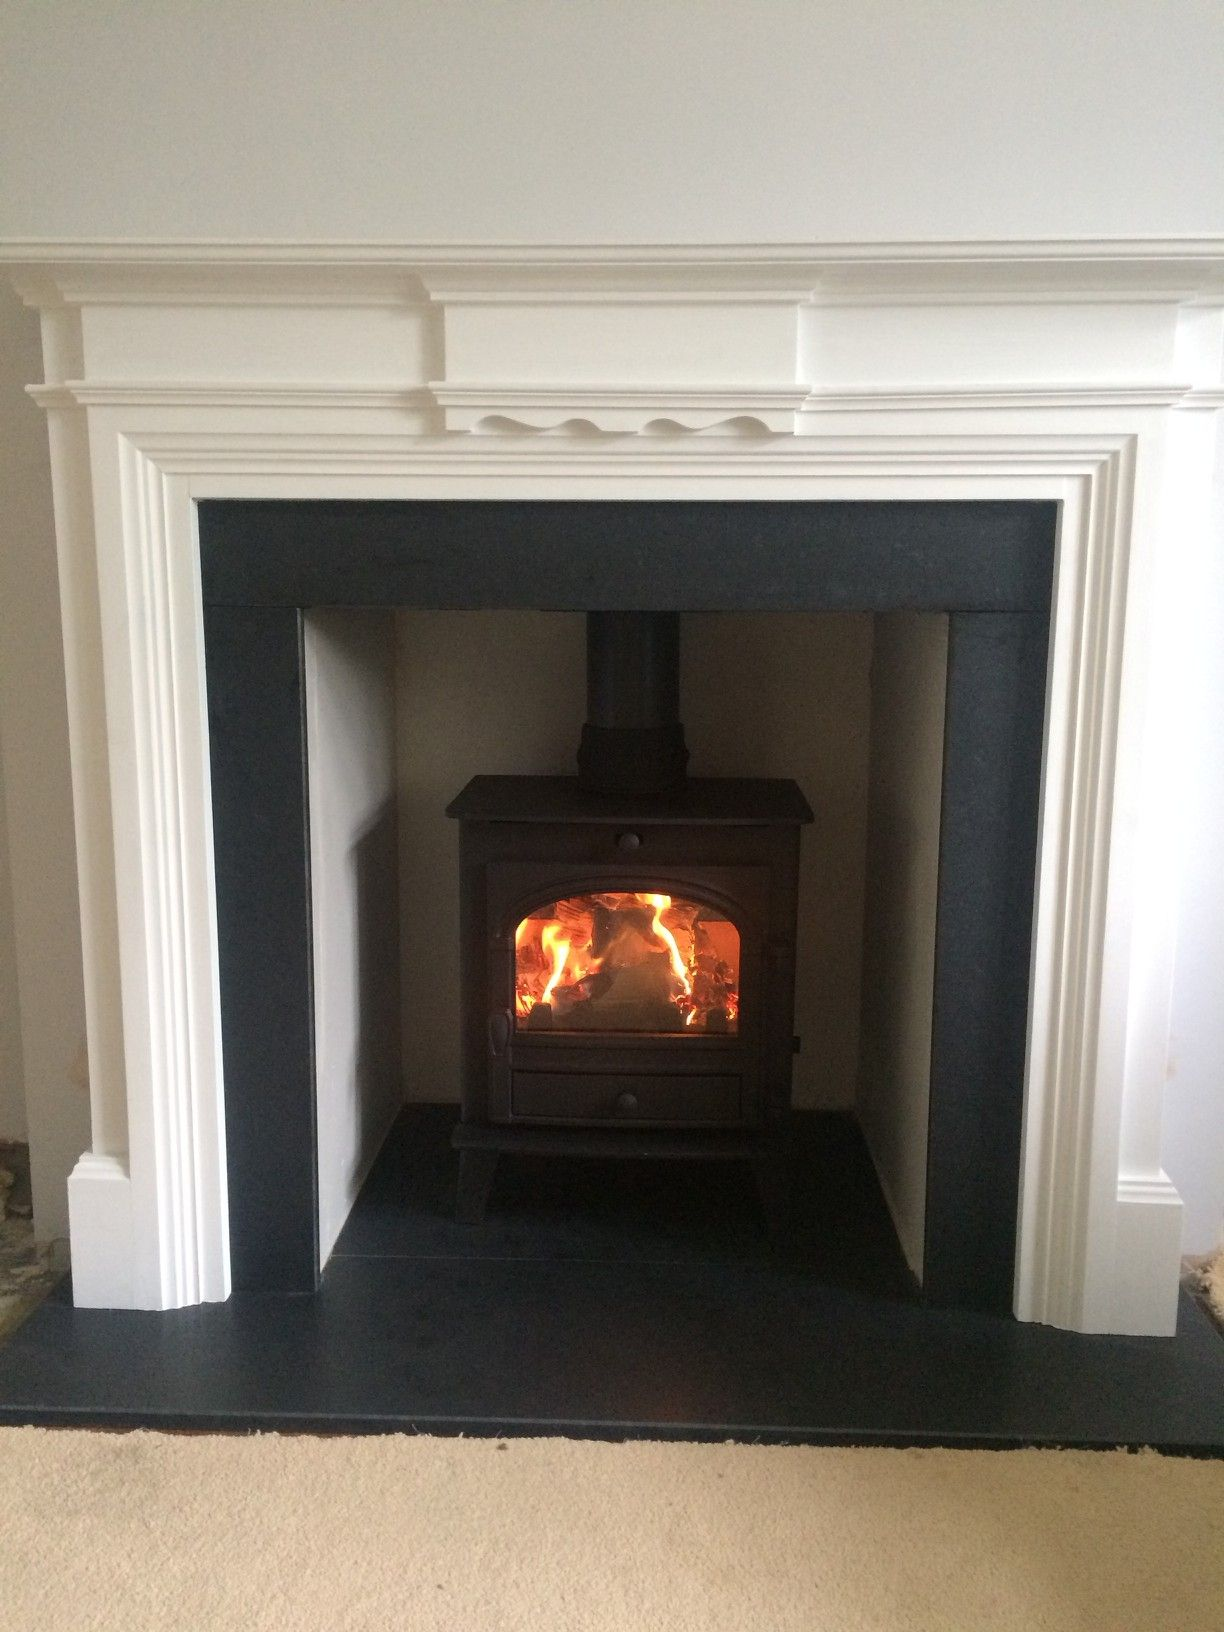 Multi Fuel Stove In Chamber With Honed Granite Slips Set And Hearth Multi Fuel Stove Stove Hearth